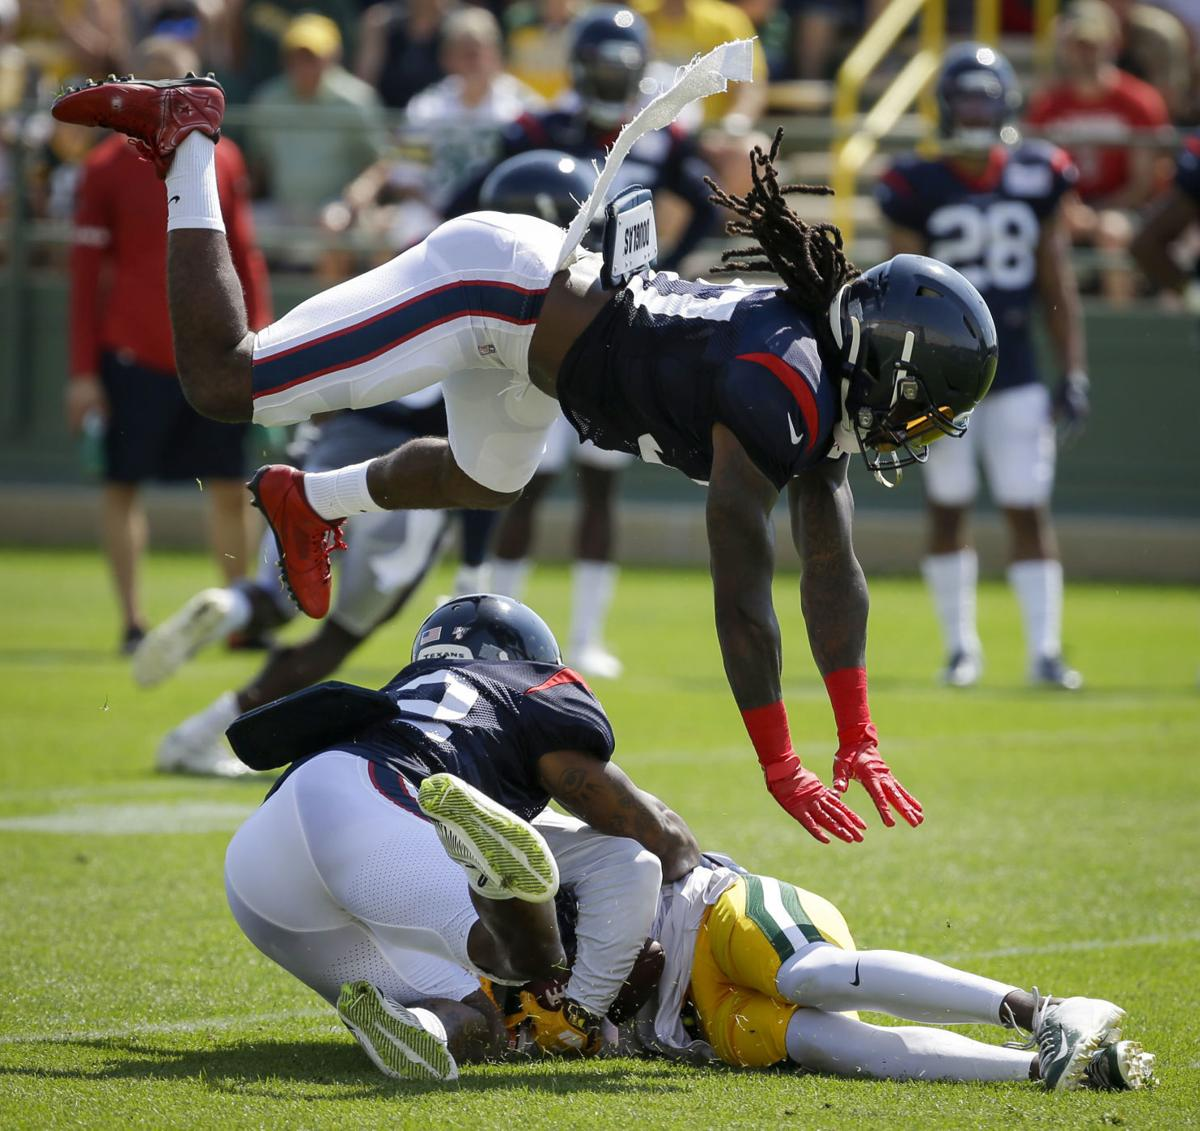 After struggles, Packers receiver J'Mon Moore hopes 'the best